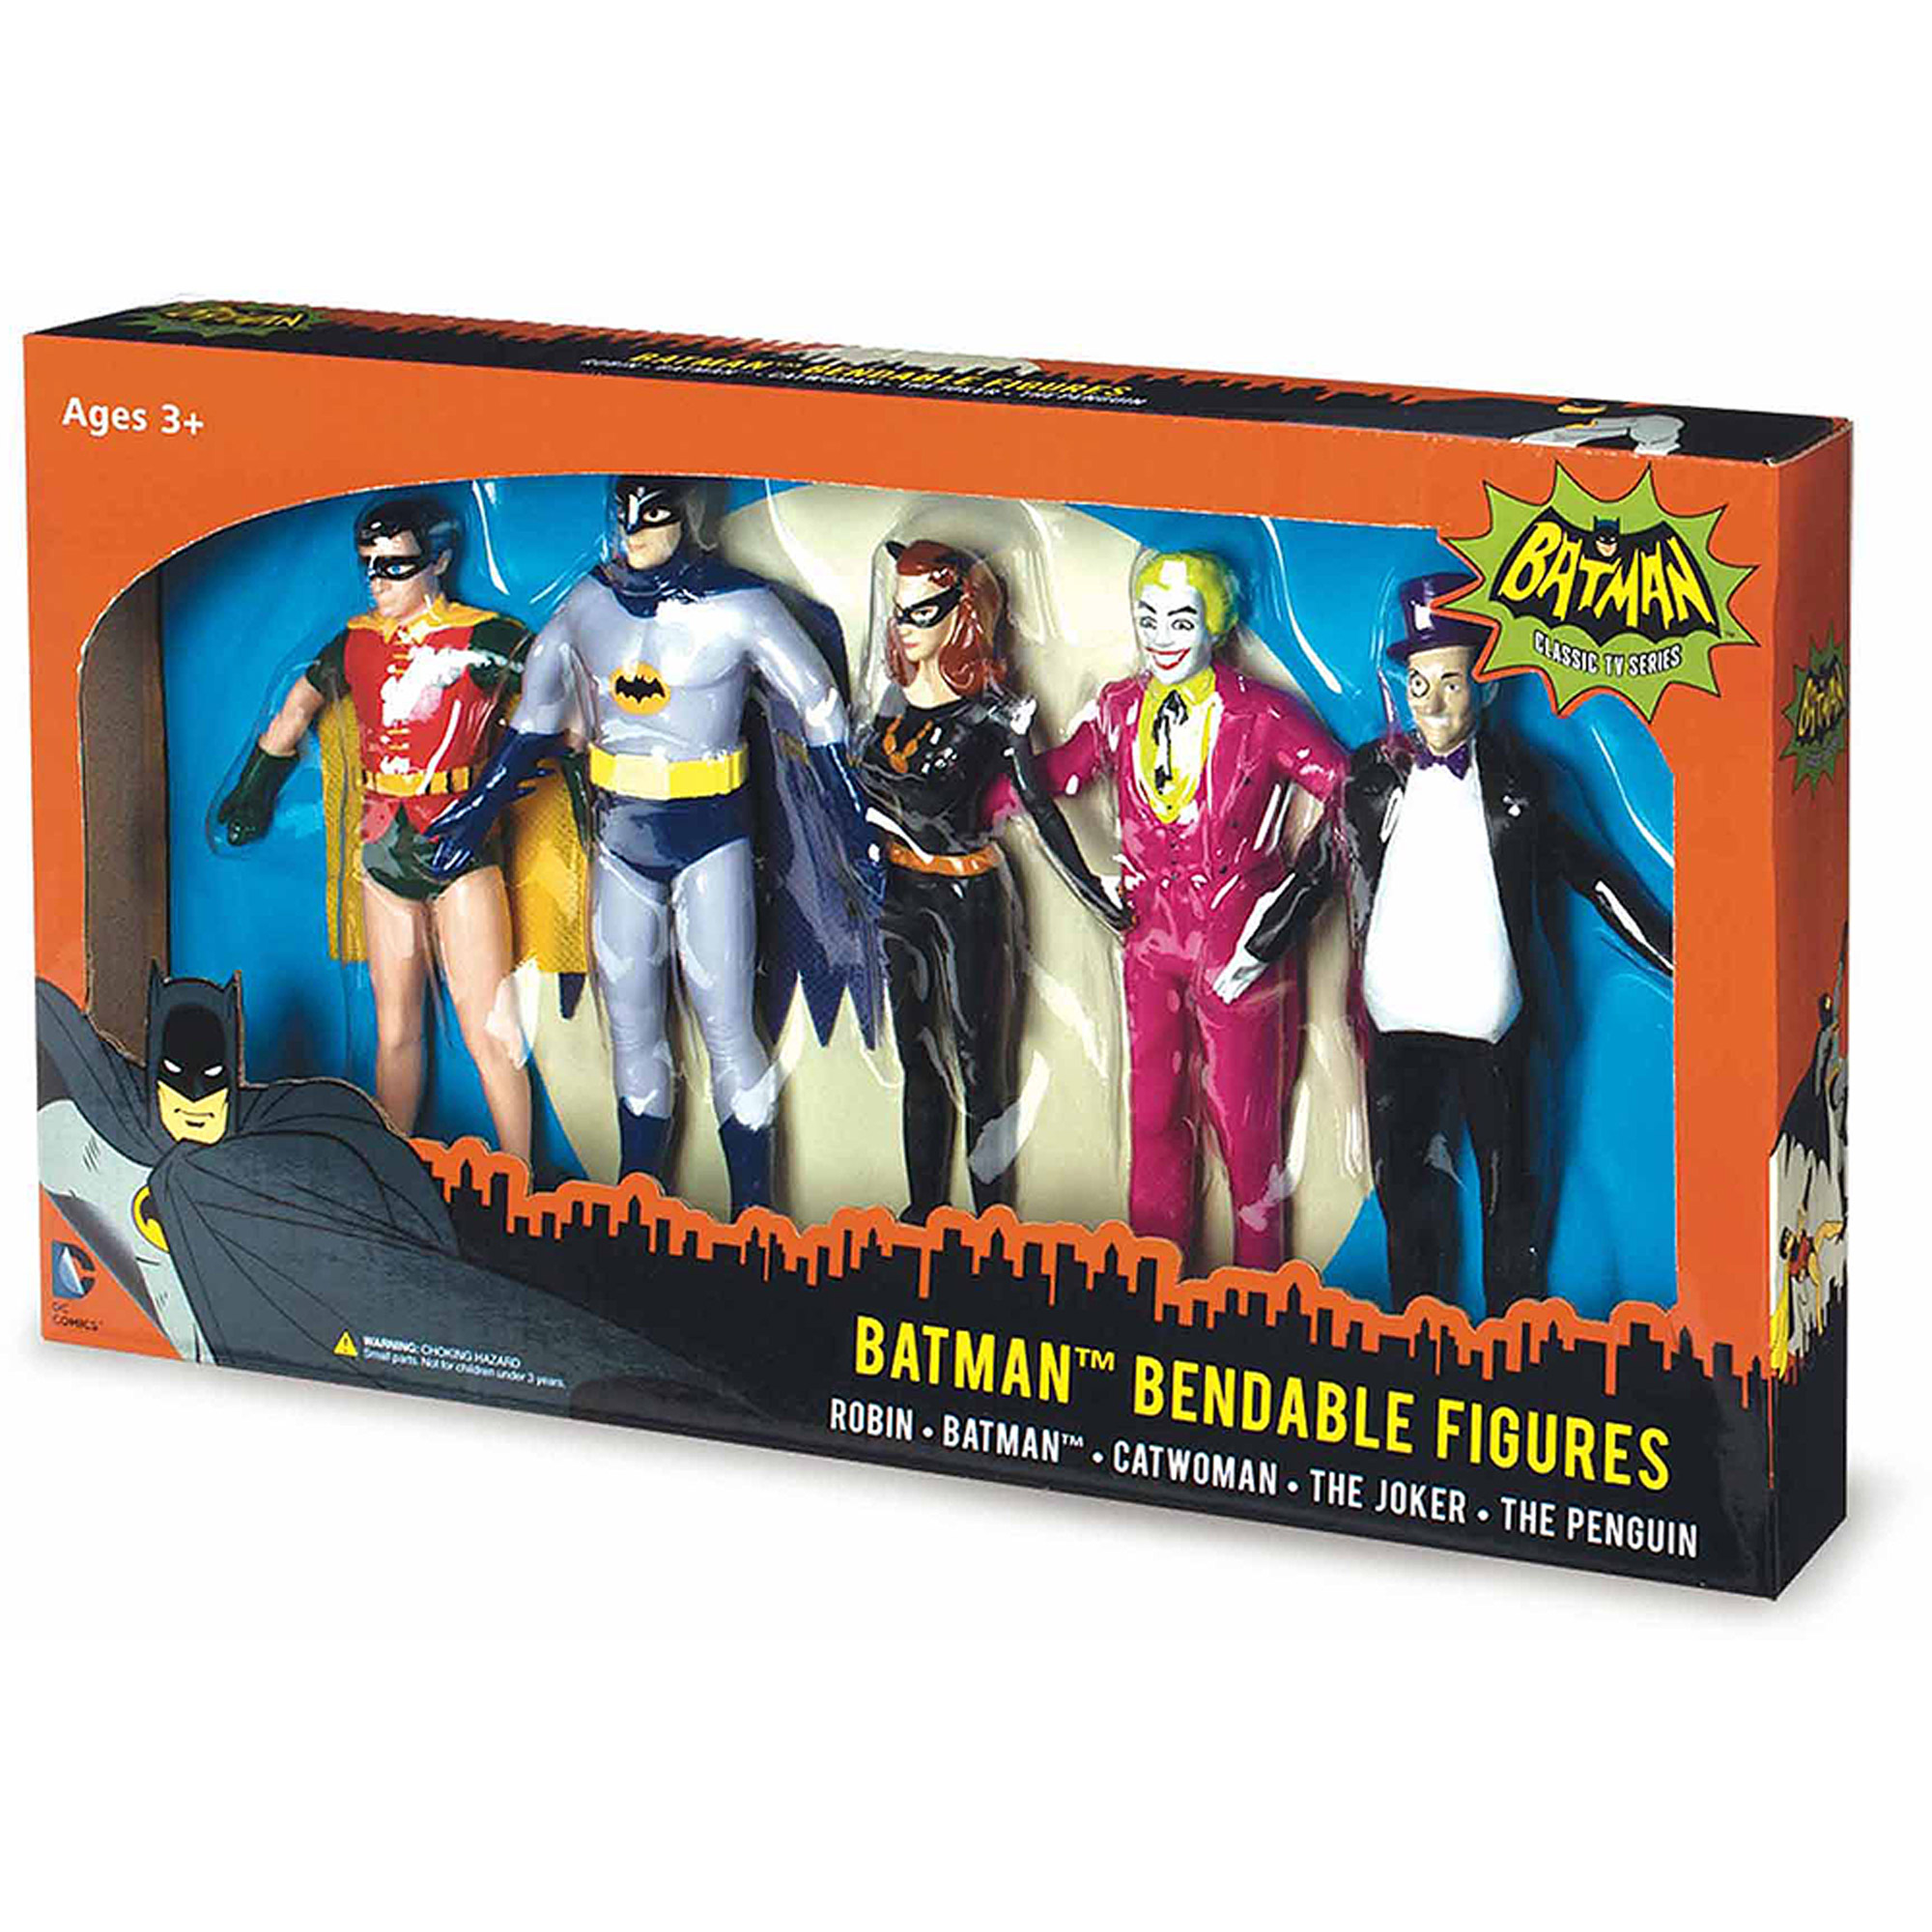 NJ Croce Batman Classic TV Series Bendable Boxed Set, Batman, Robin, Catwoman, The Joker and The Penguin by NJ Croce